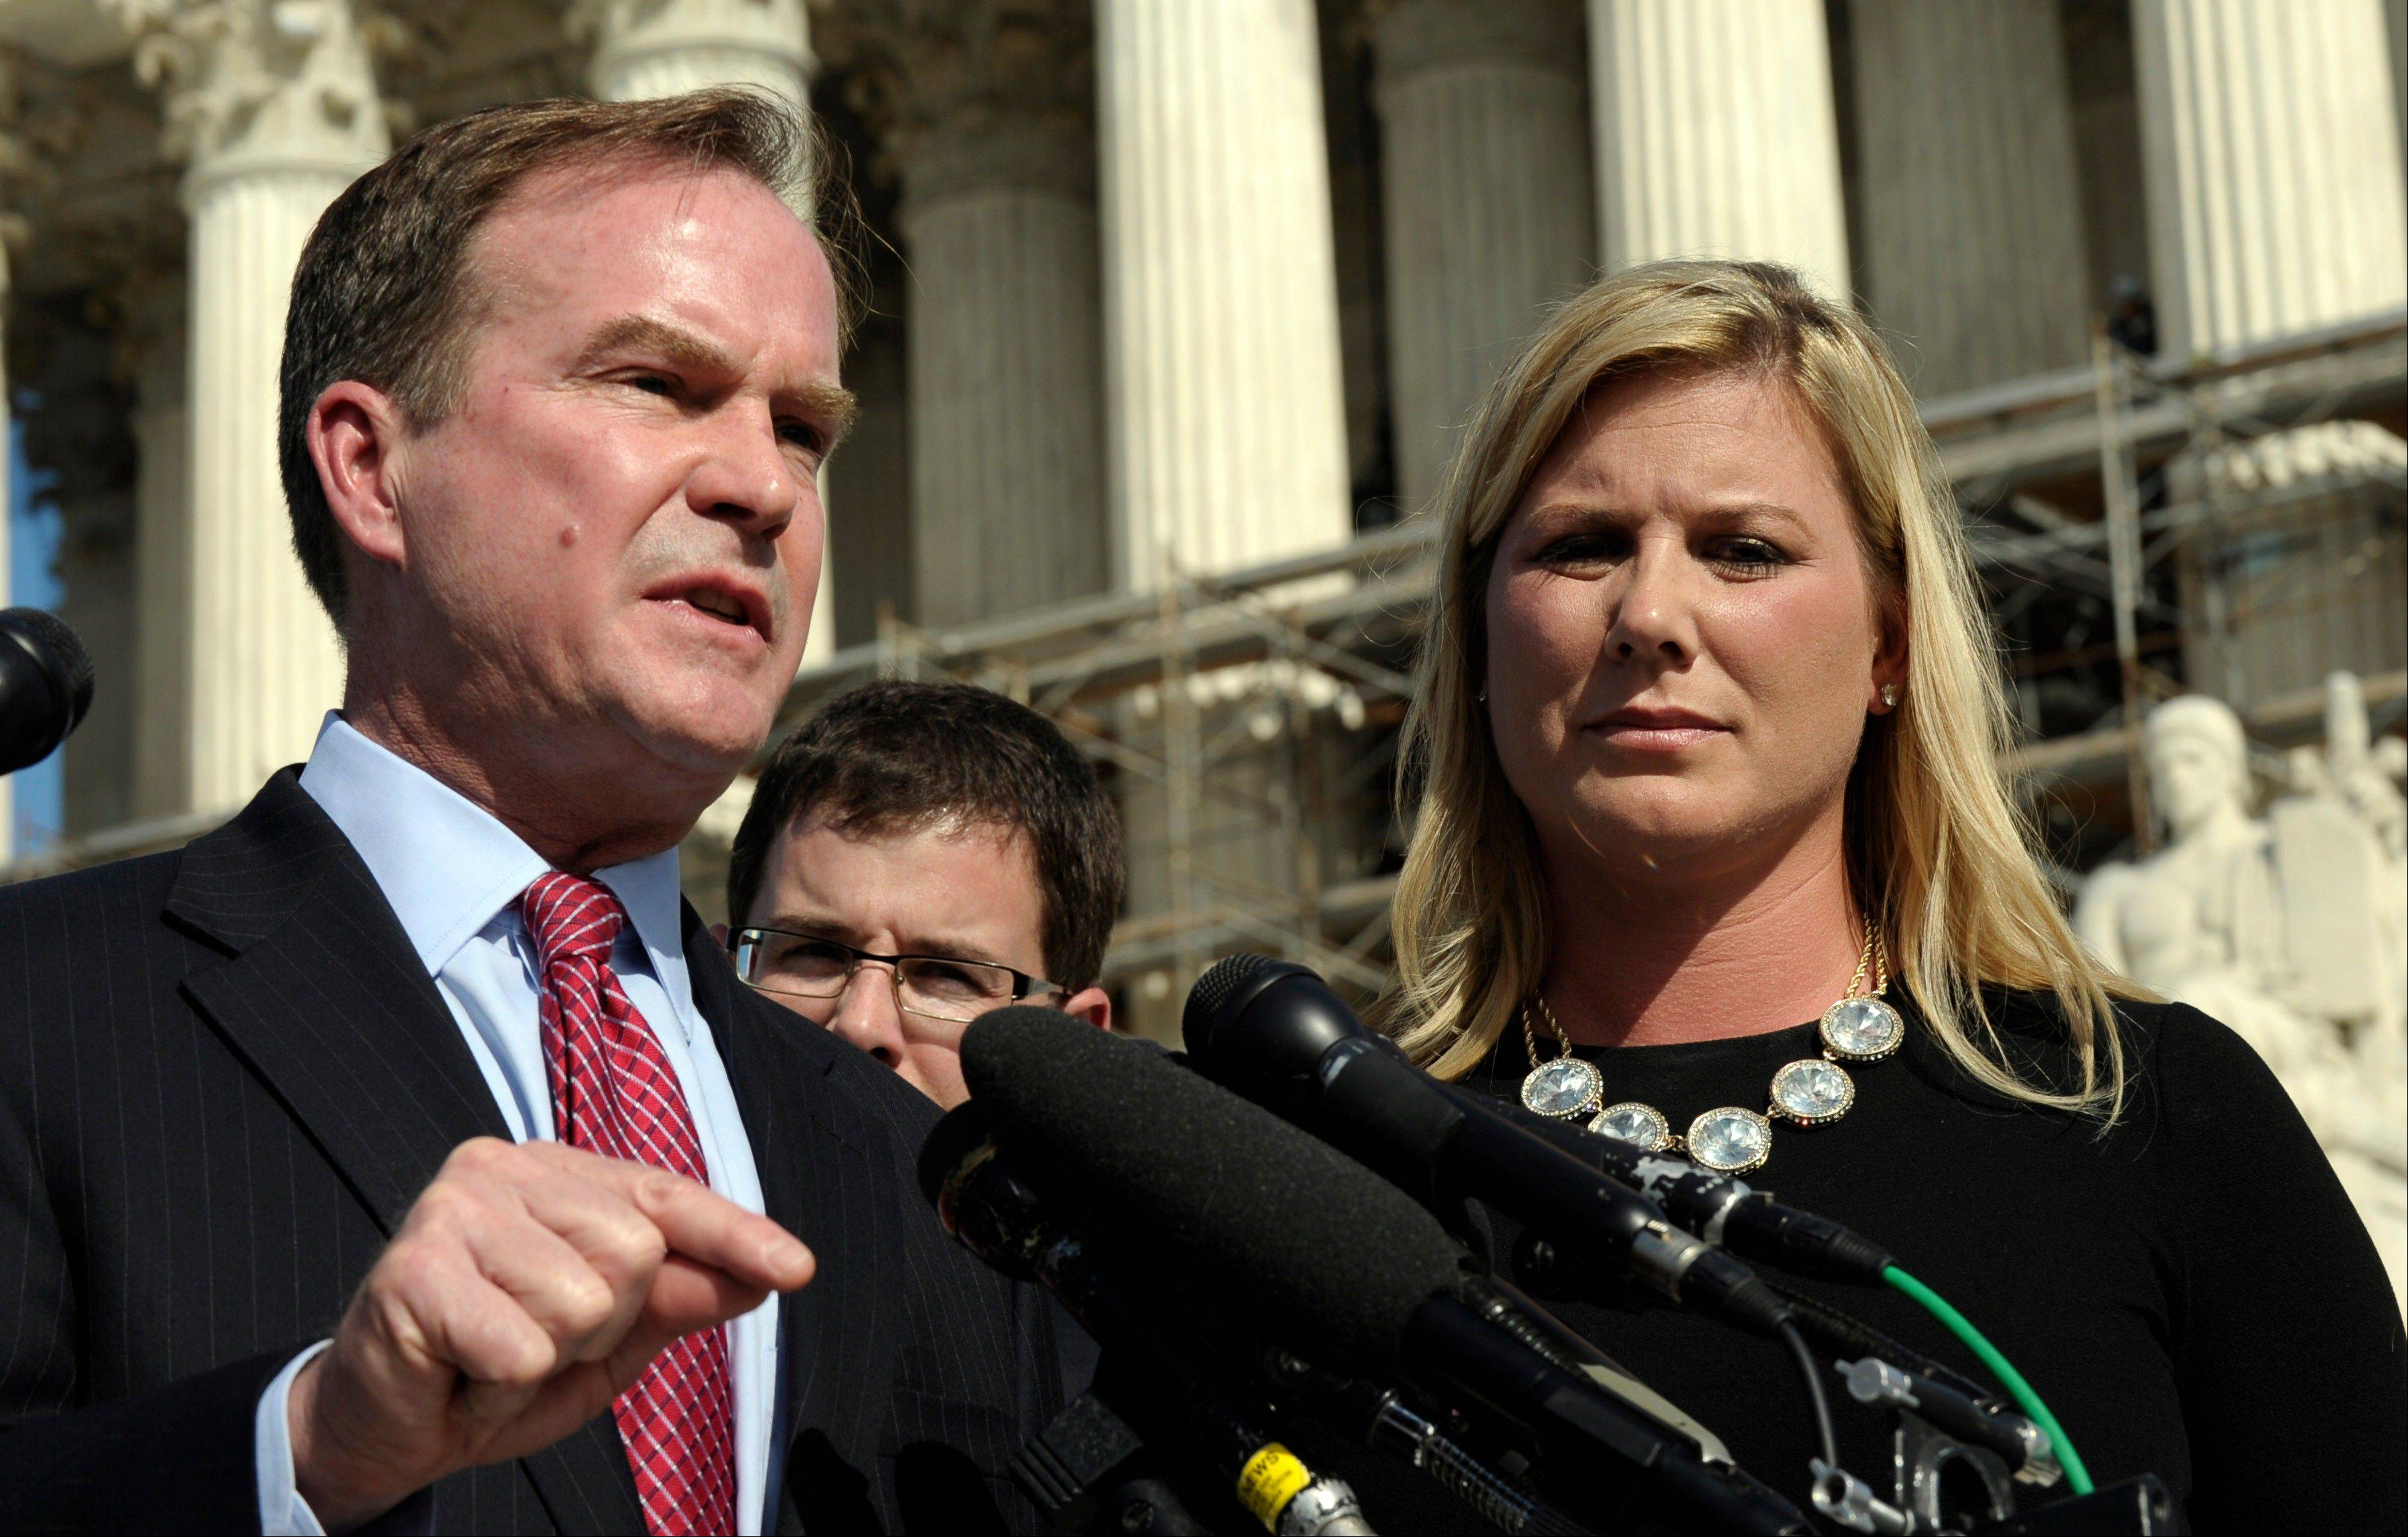 Michigan Attorney General Bill Schuette, left, standing with Jennifer Gratz, chief executive officer of XIV Foundation, speaks to reporters after arguing their case before the Supreme Court Tuesday.